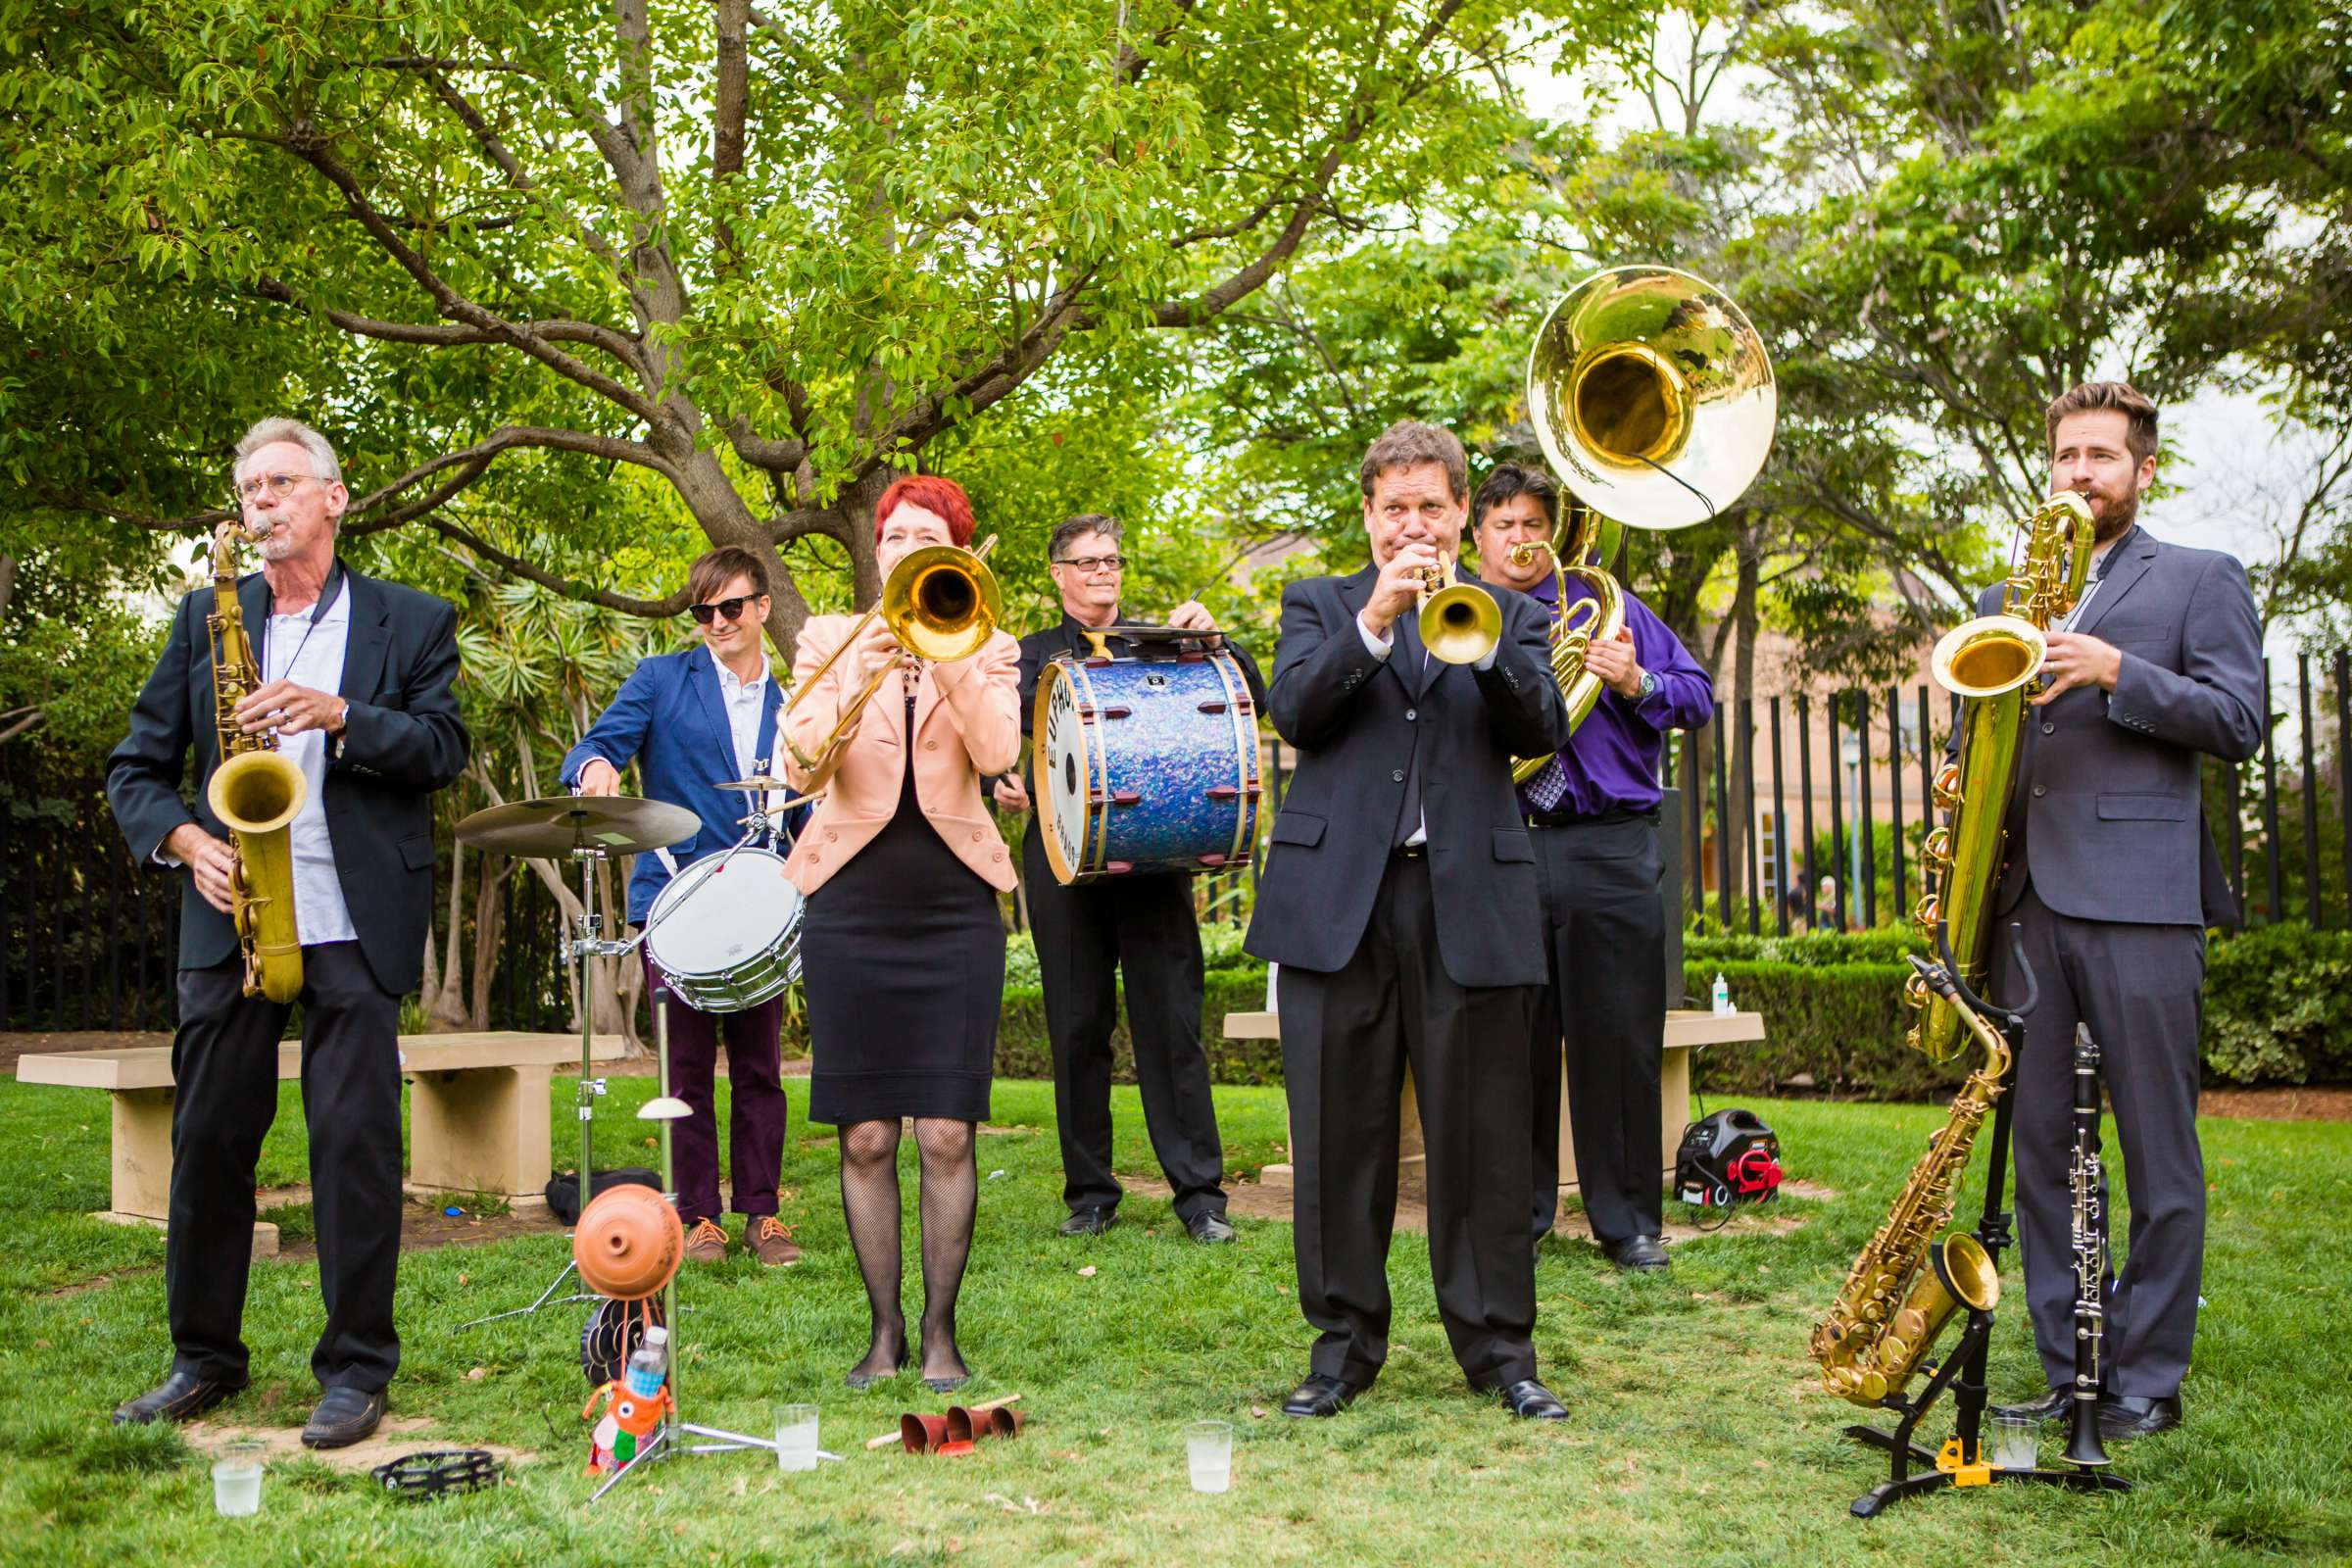 Musicians at San Diego Museum of Art Wedding coordinated by First Comes Love Weddings & Events, Ruthie and Larry Wedding Photo #236874 by True Photography